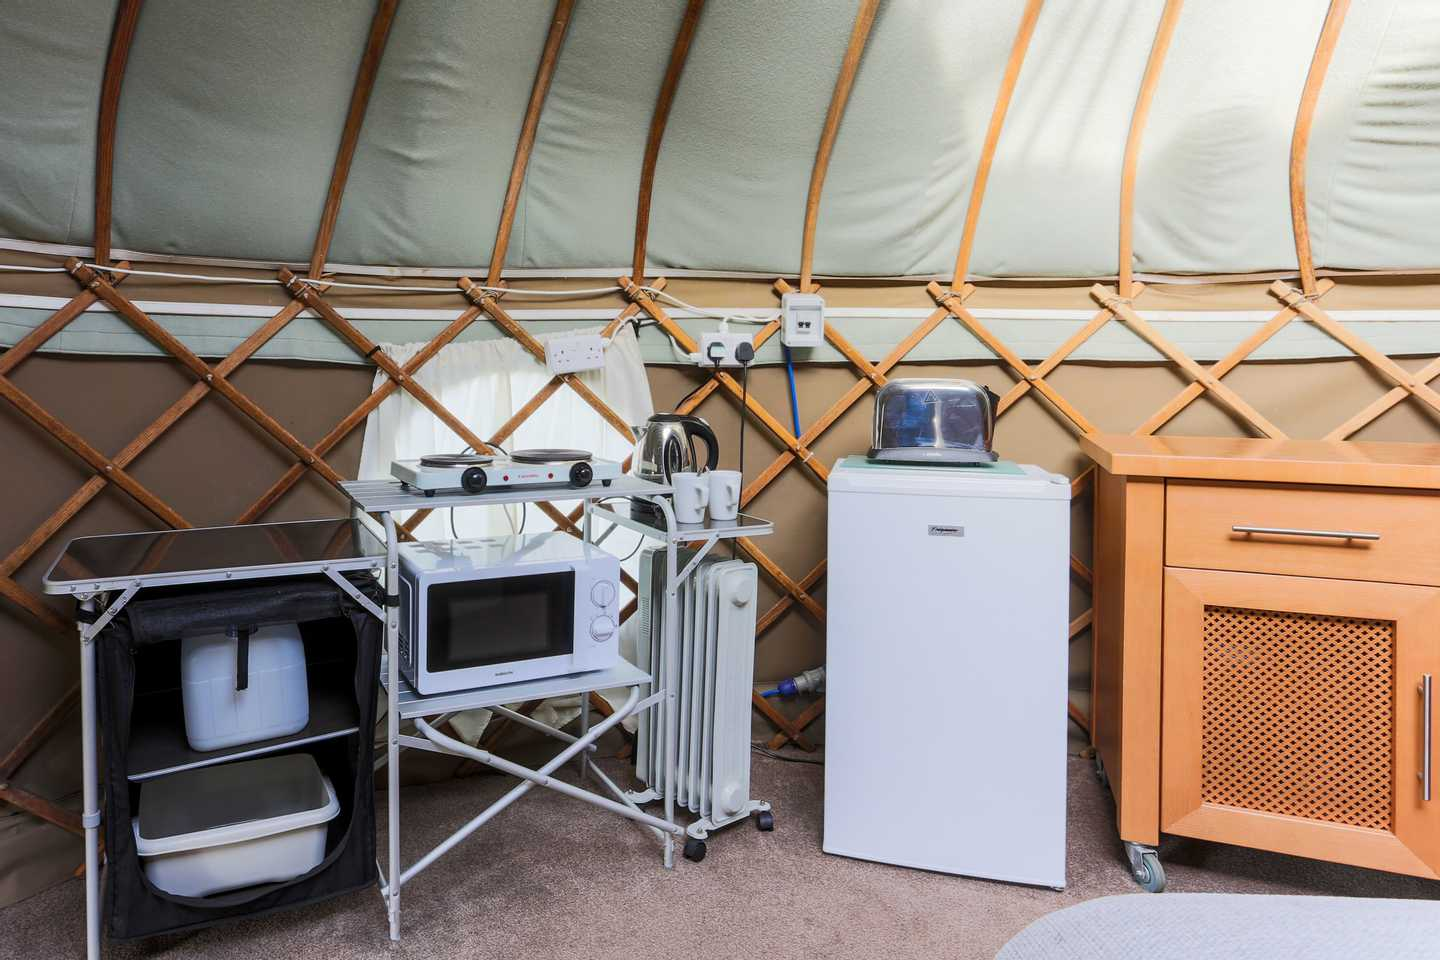 The cooking facilities in a Yurt